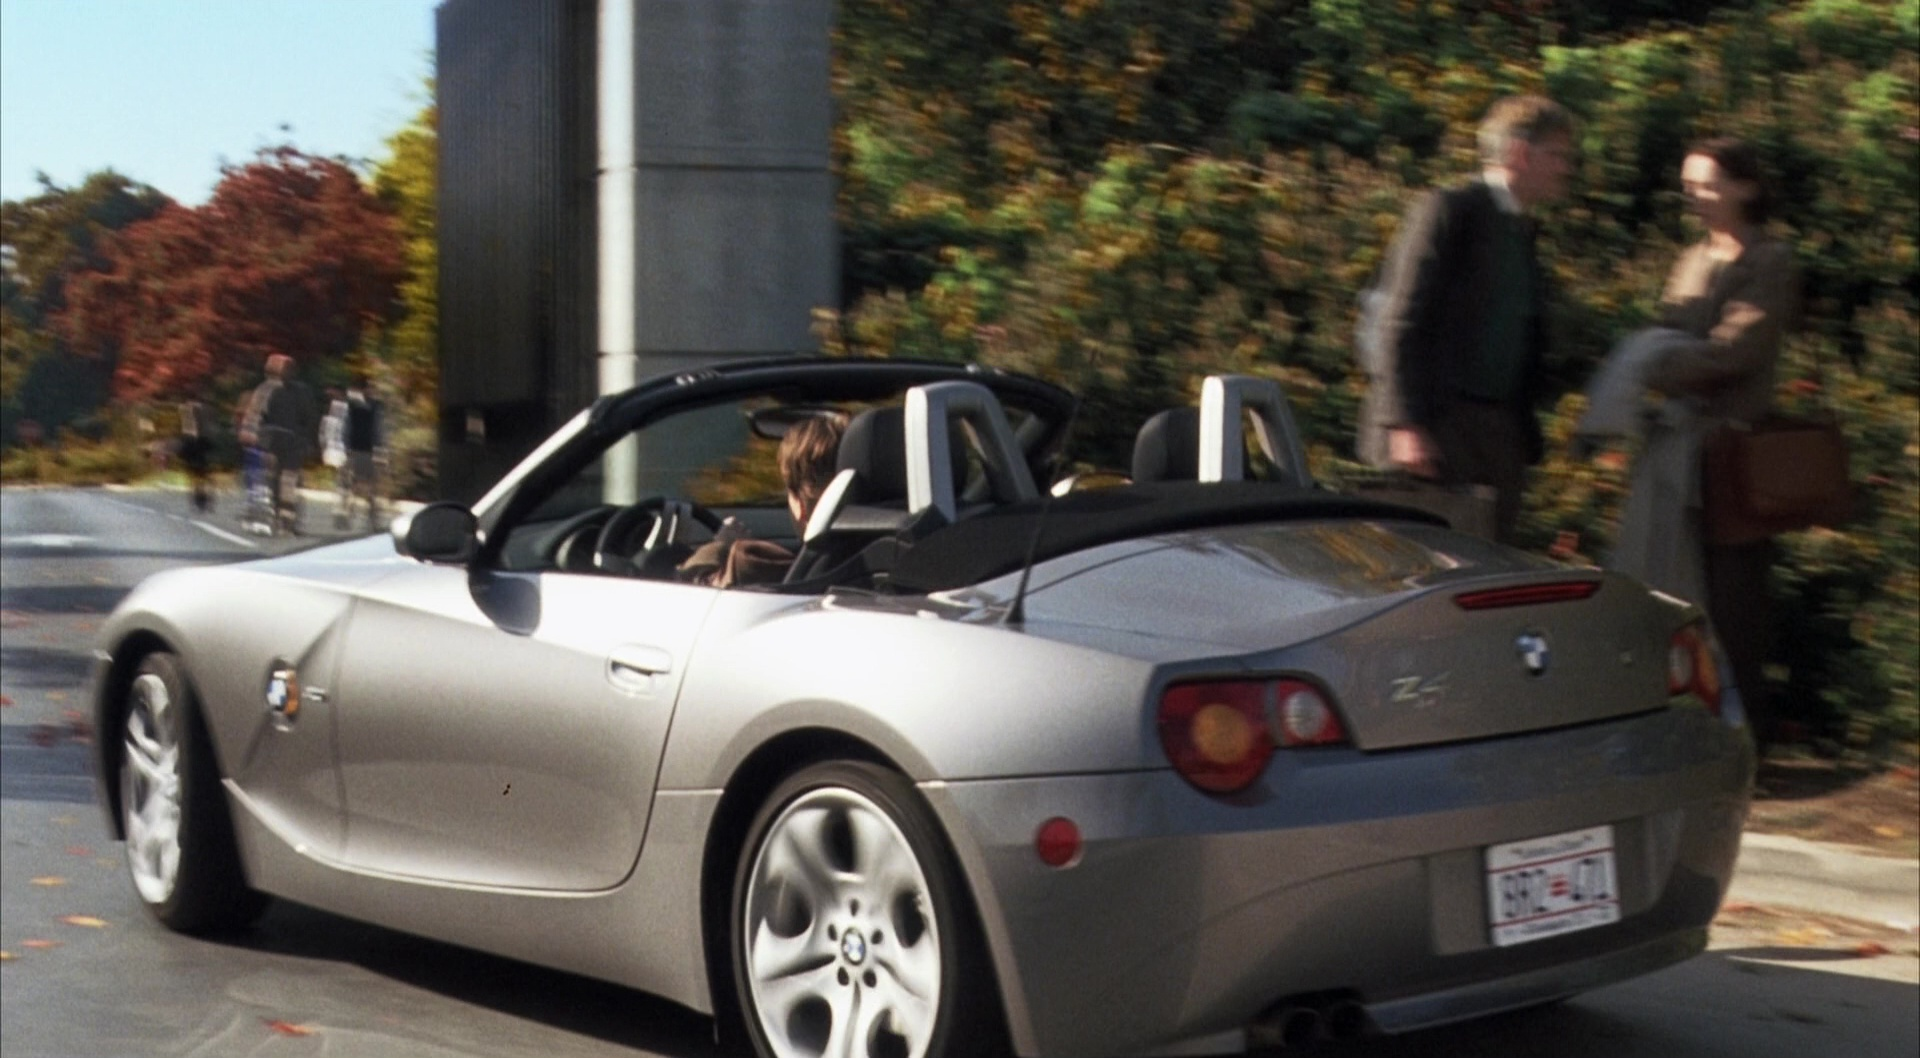 Bmw Z4 Door 2007 Bmw Z4 M Roadster Convertible 2 Door For Sale In Lsd Doors For The Bmw Z4 Z4